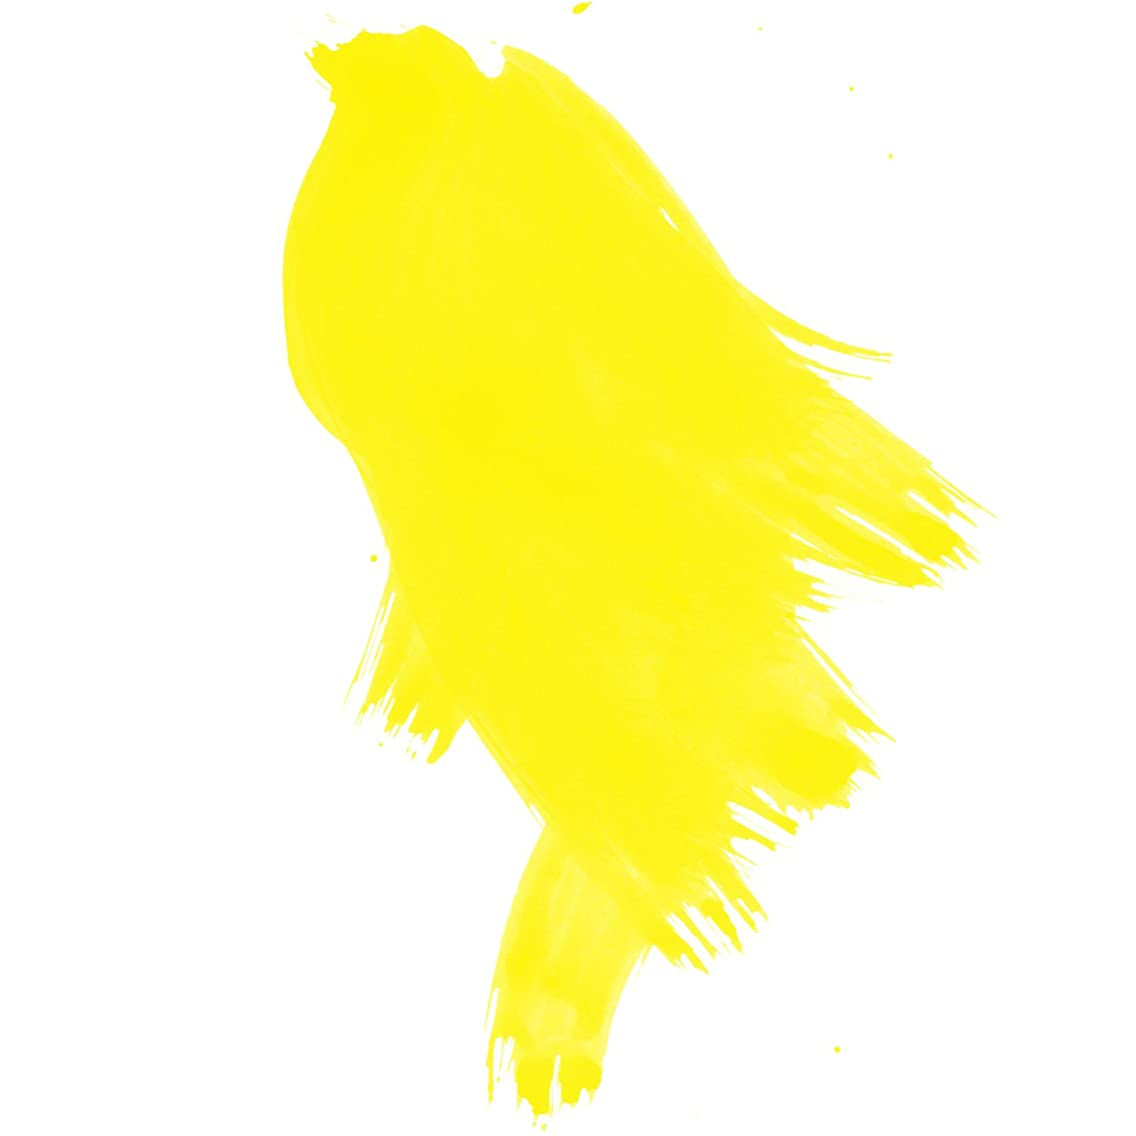 Daler-Rowney FW Pearlescent Acrylic Ink, 1 oz, Hot Cool Yellow (603201113)